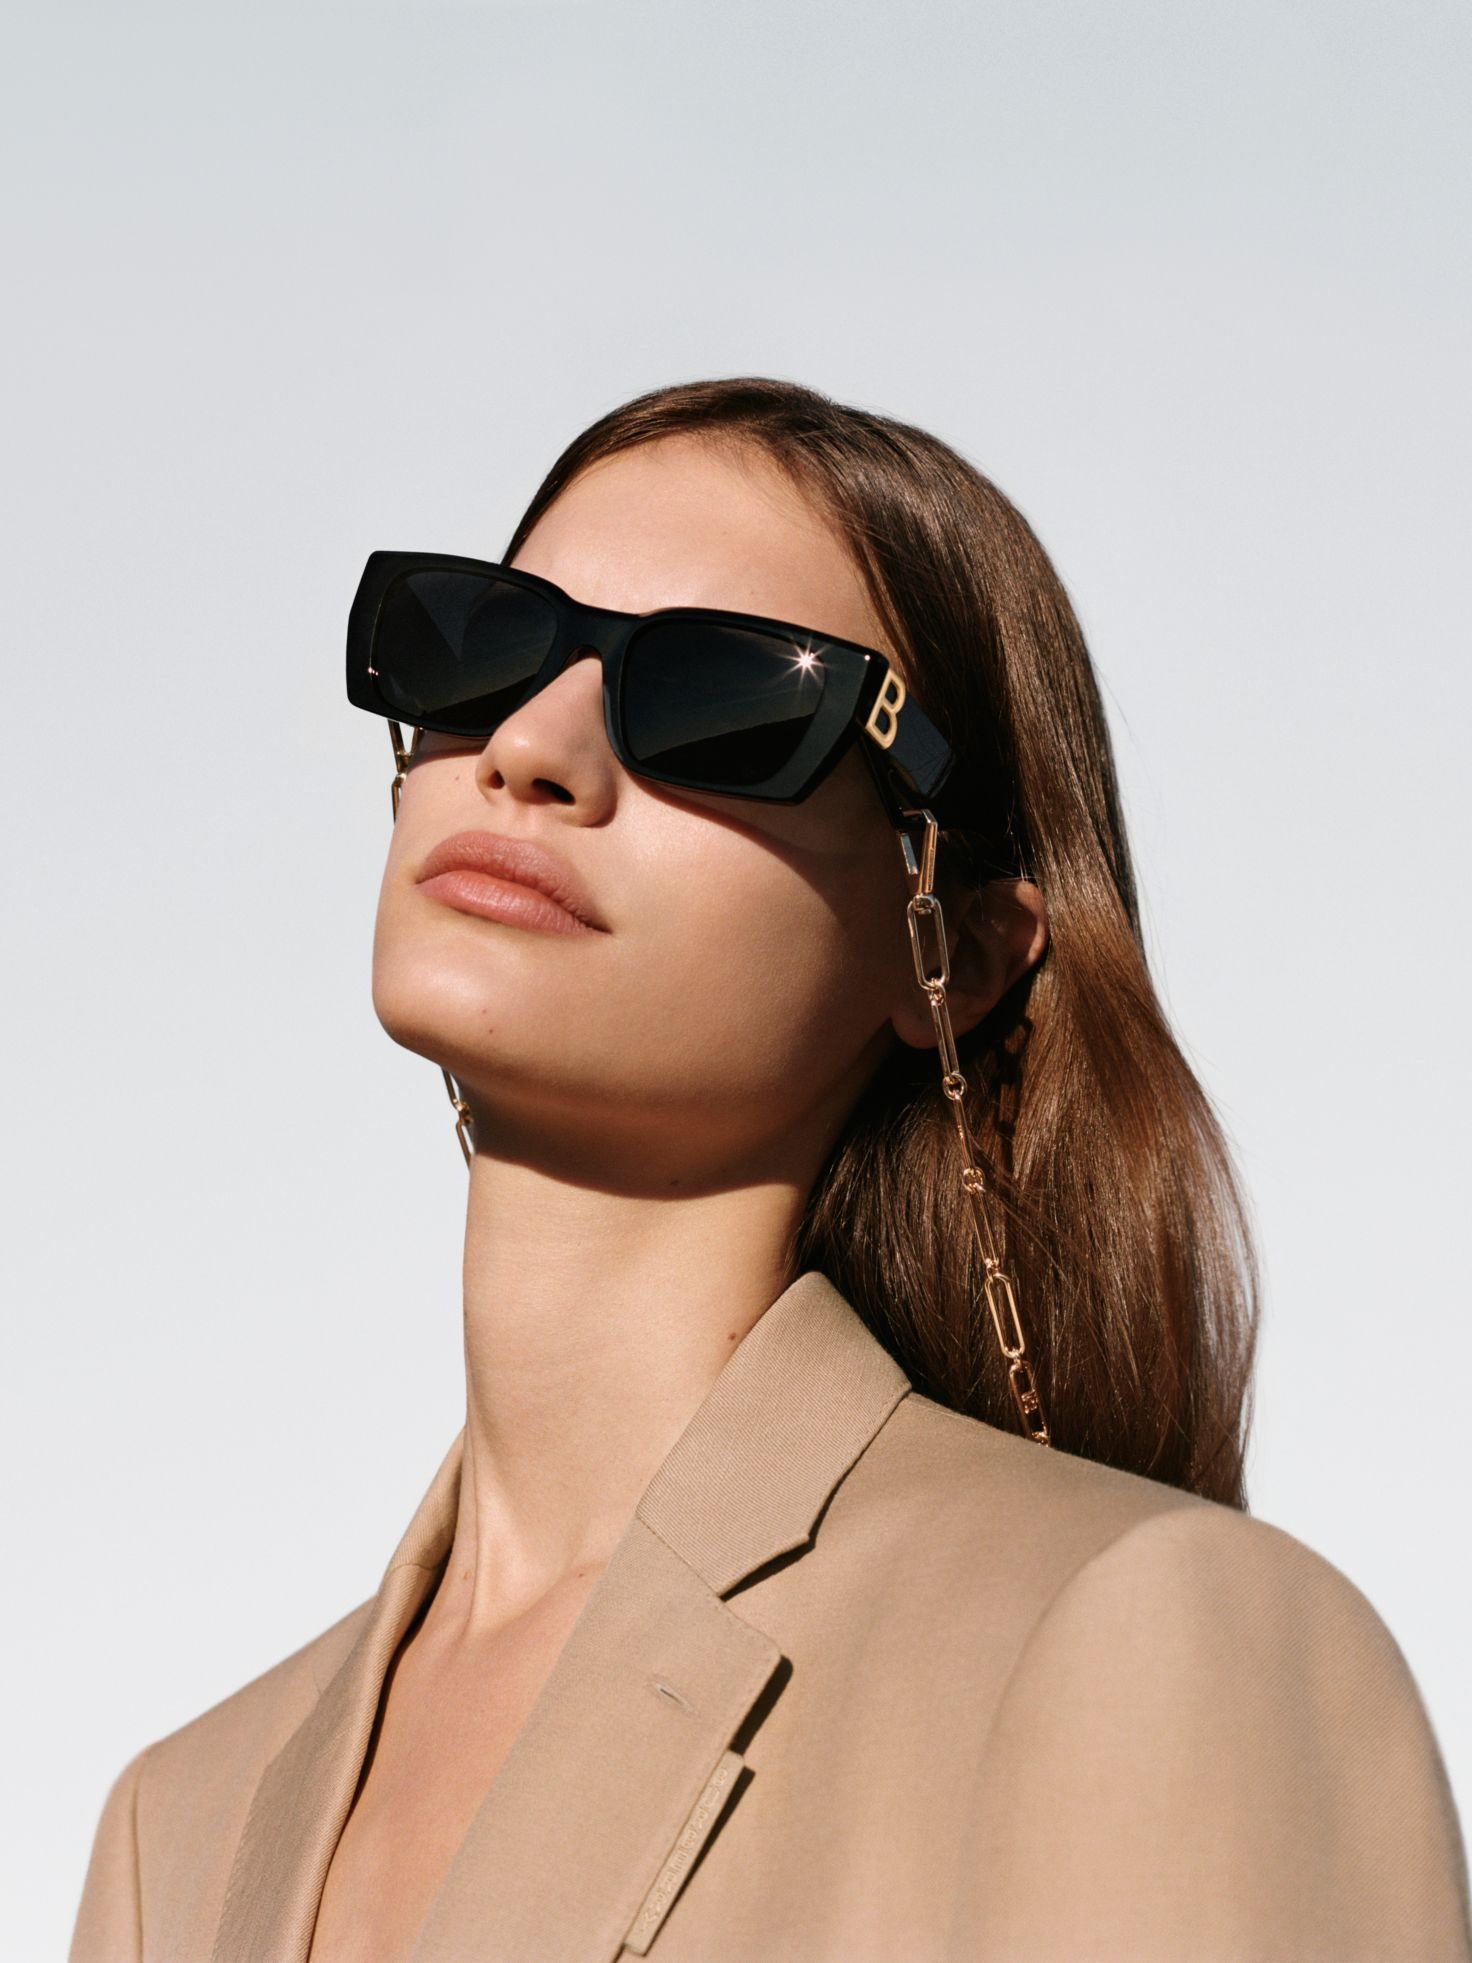 model wearing black square frames with chain